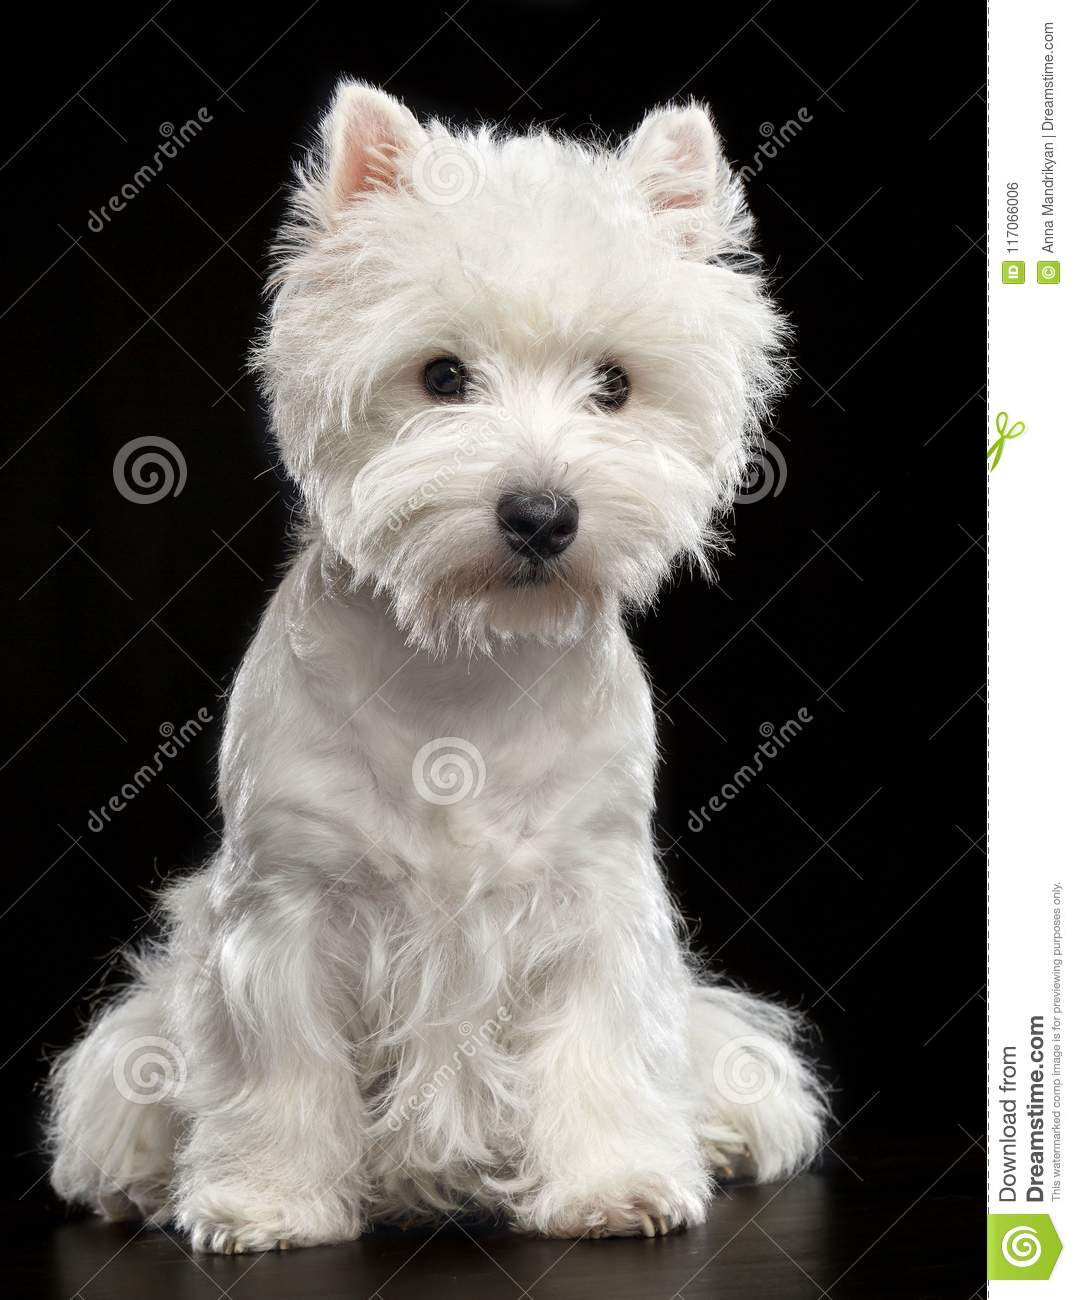 West Highland White Terrier Dog Isolated On Black Background Stock Photo Image Of Westie Terrier 117066006